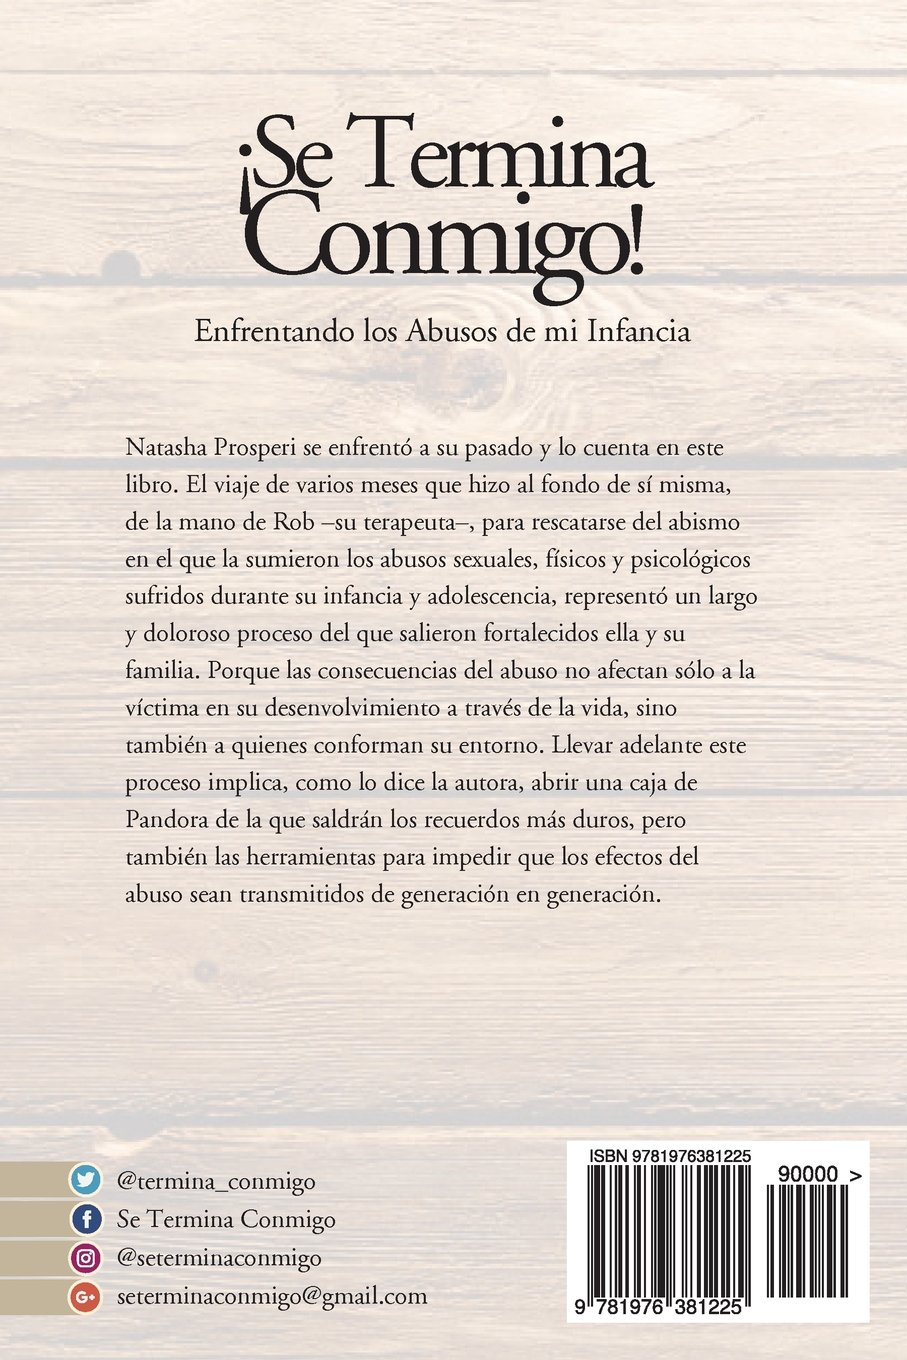 ¡Se Termina Conmigo! (Spanish Edition): Natasha Prosperi: 9781976381225: Amazon.com: Books